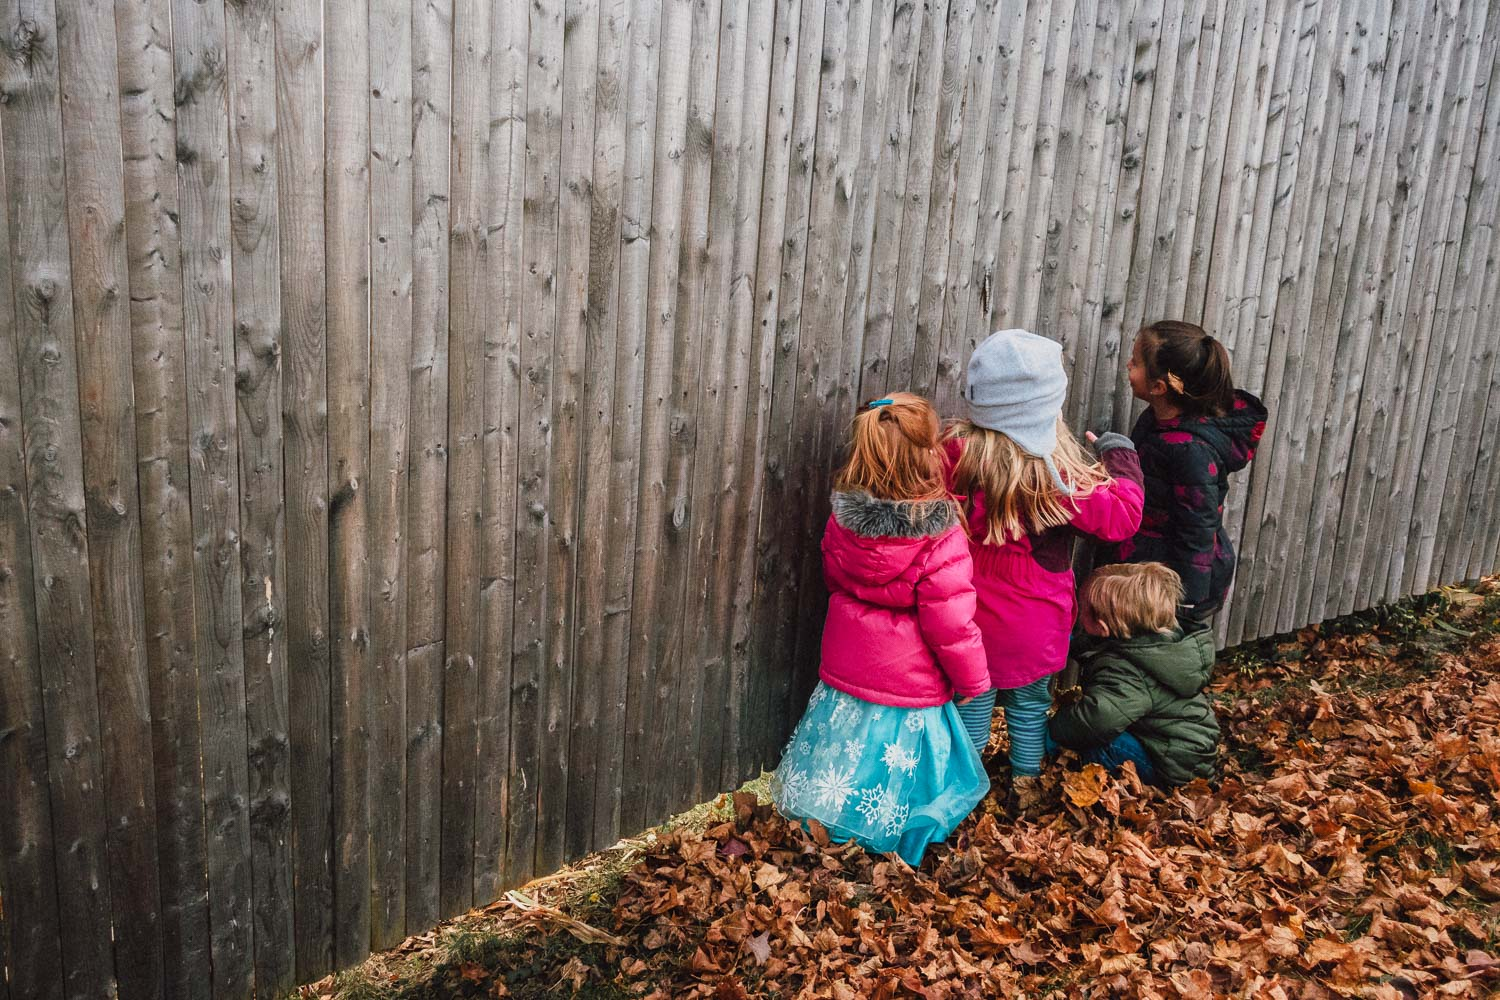 Kids peeking through a hole in the fence.